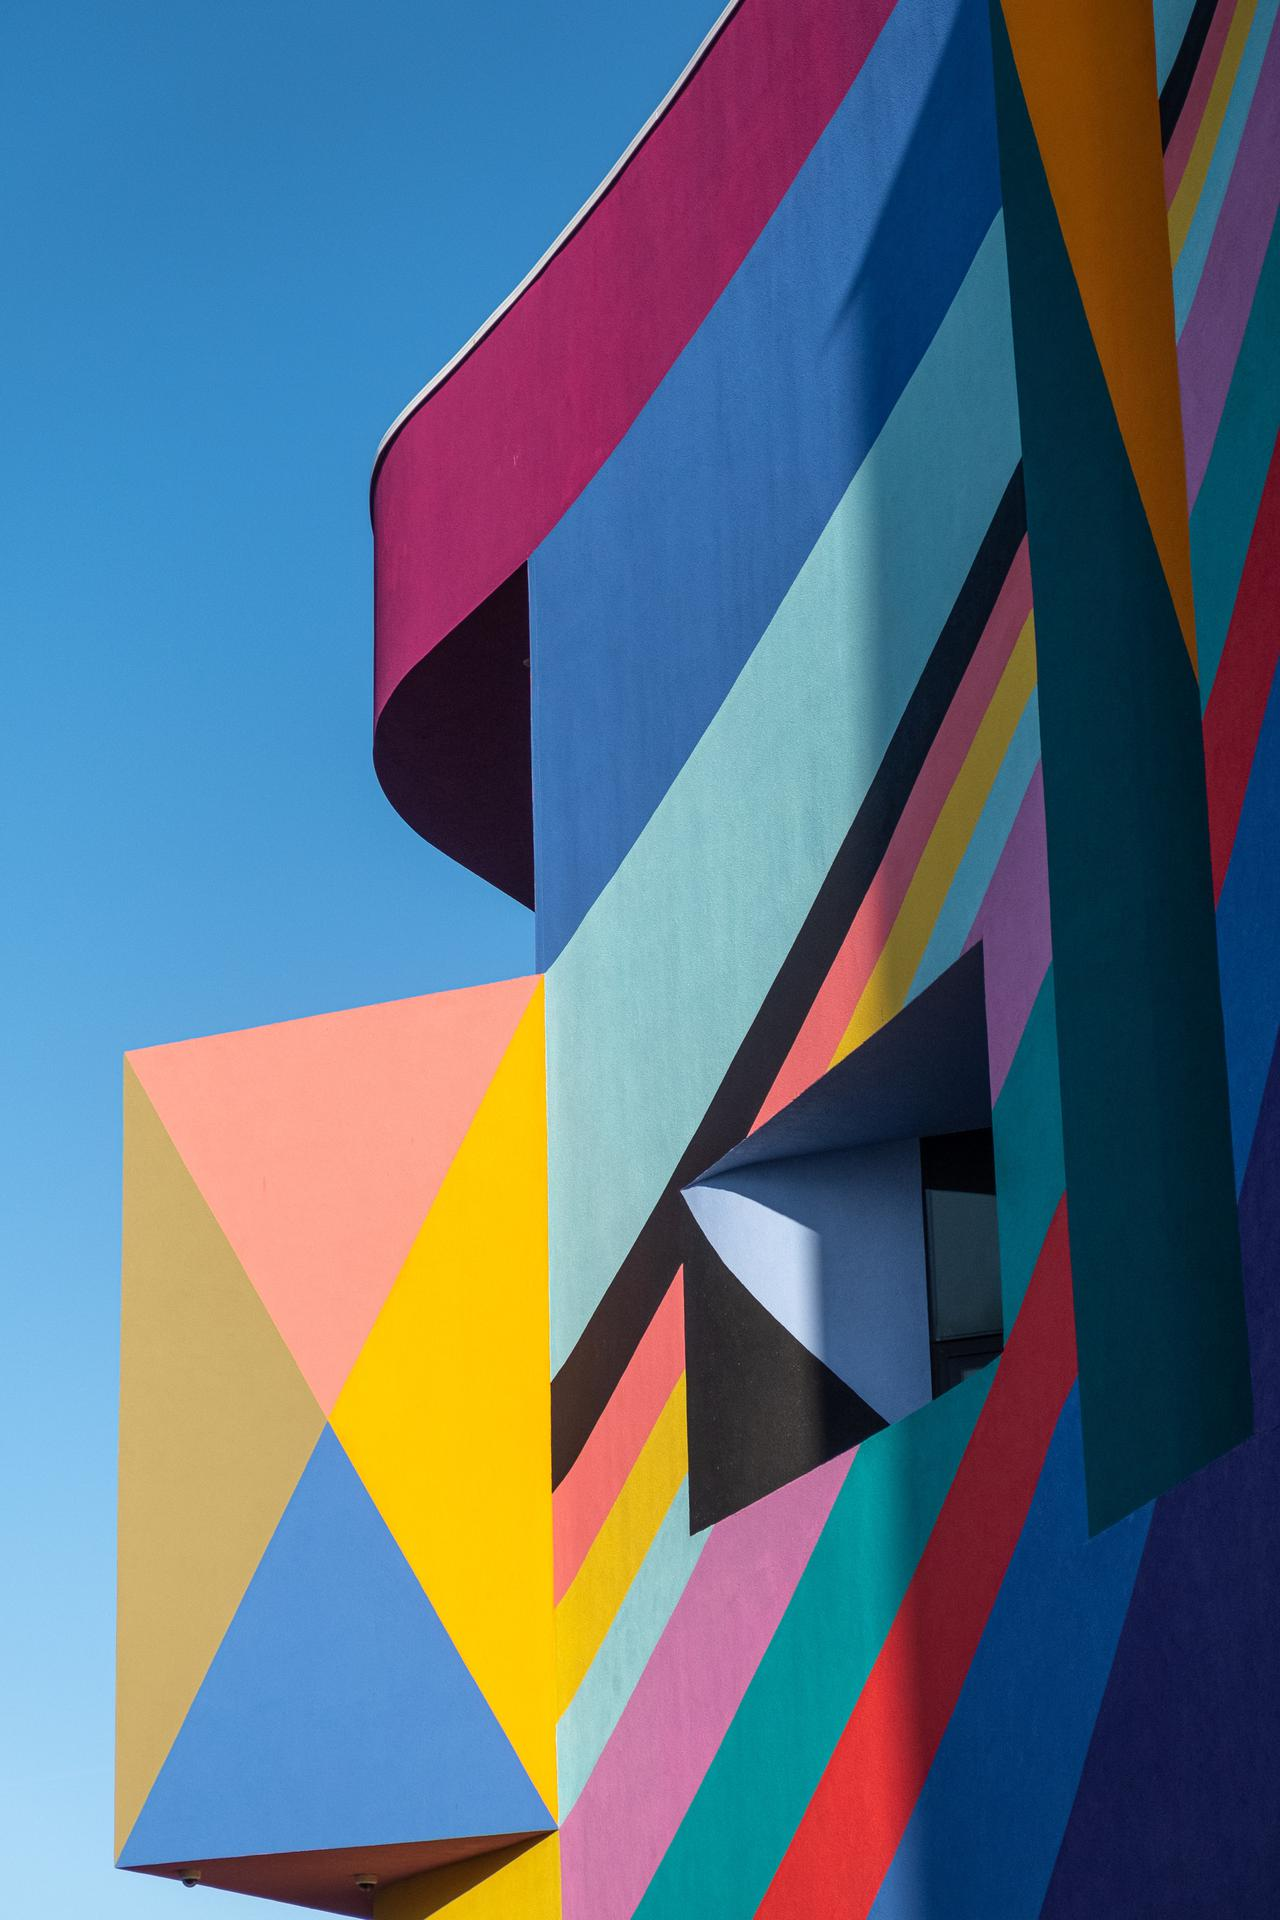 Colourful Towner Art Gallery